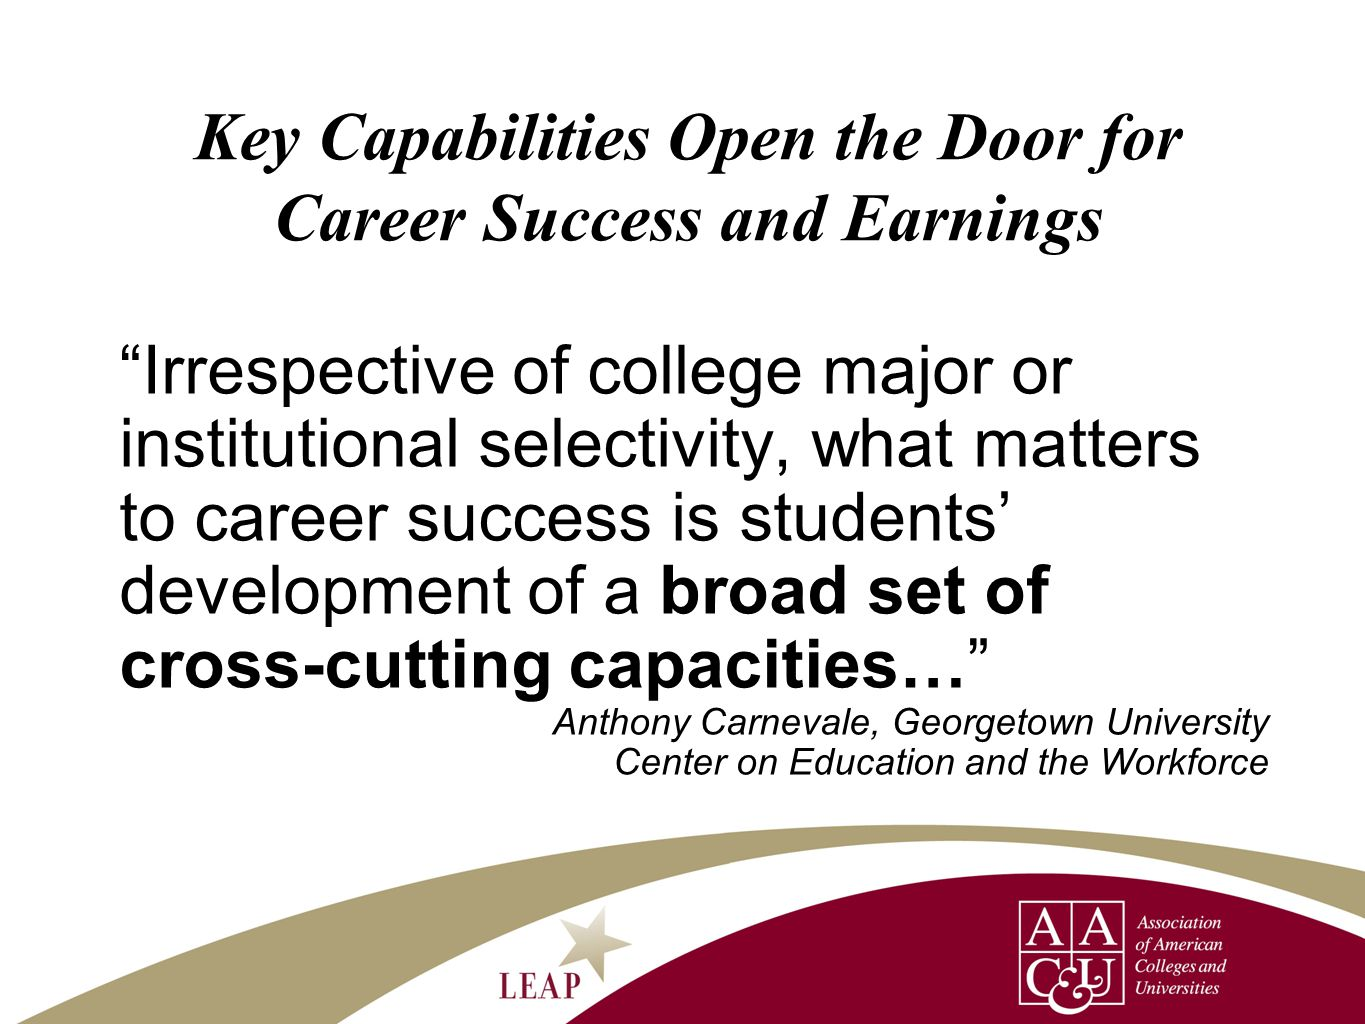 Key Capabilities Open the Door for Career Success and Earnings Irrespective of college major or institutional selectivity, what matters to career success is students' development of a broad set of cross-cutting capacities… Anthony Carnevale, Georgetown University Center on Education and the Workforce